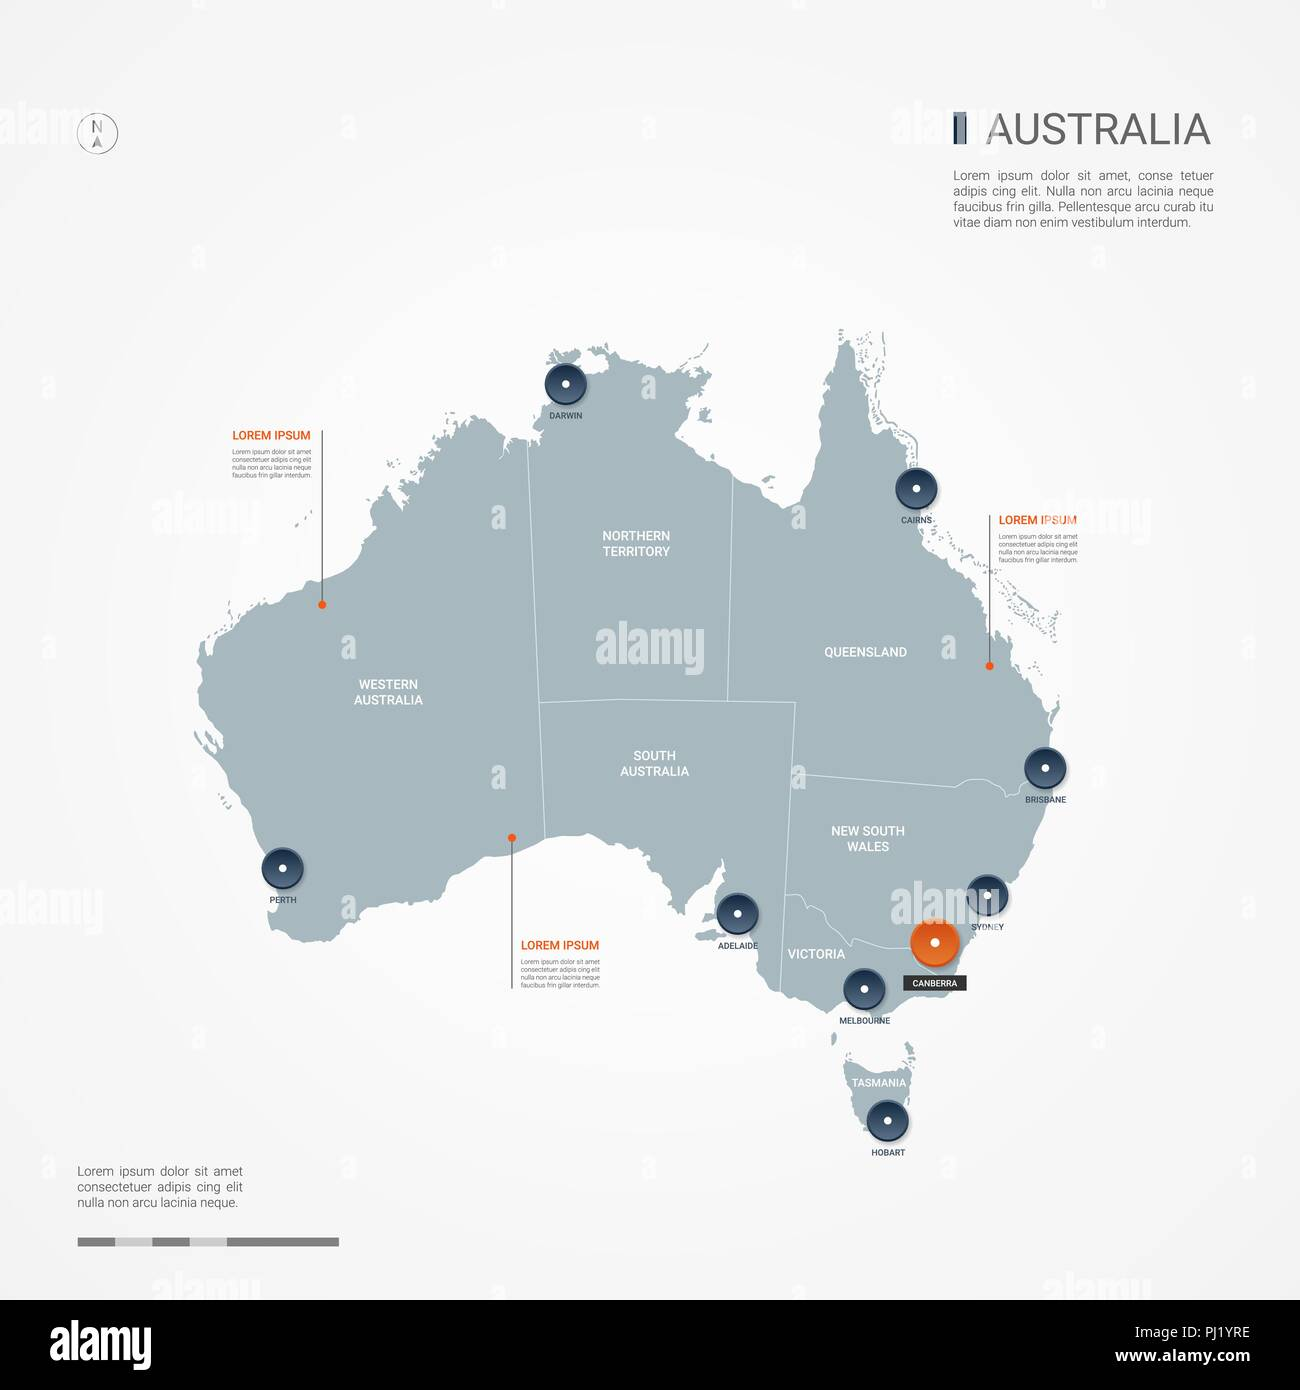 Australia Map Main Cities.Australia Map With Borders Cities Capital Canberra And